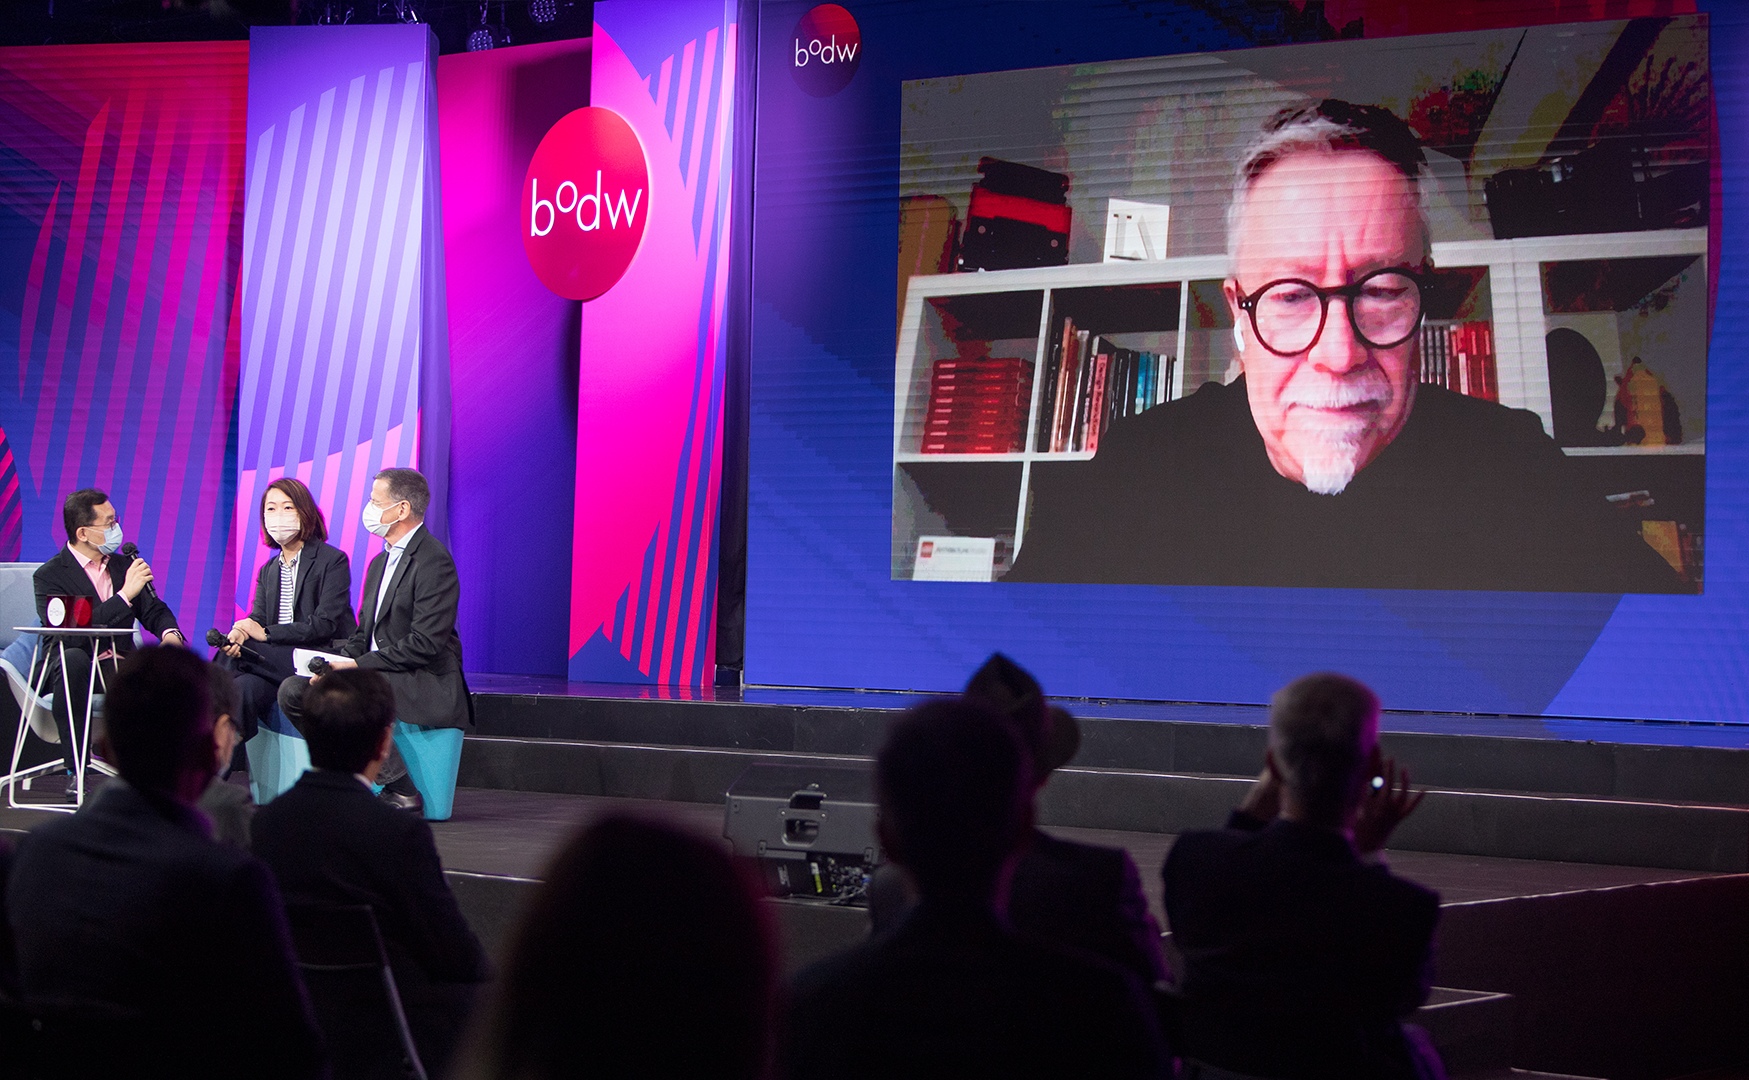 Business of Design Week 2020 Summit Concludes First Hybrid Live Edition Captures Trends Redefined by World's Top Creative Minds for the Post-pandemic Era